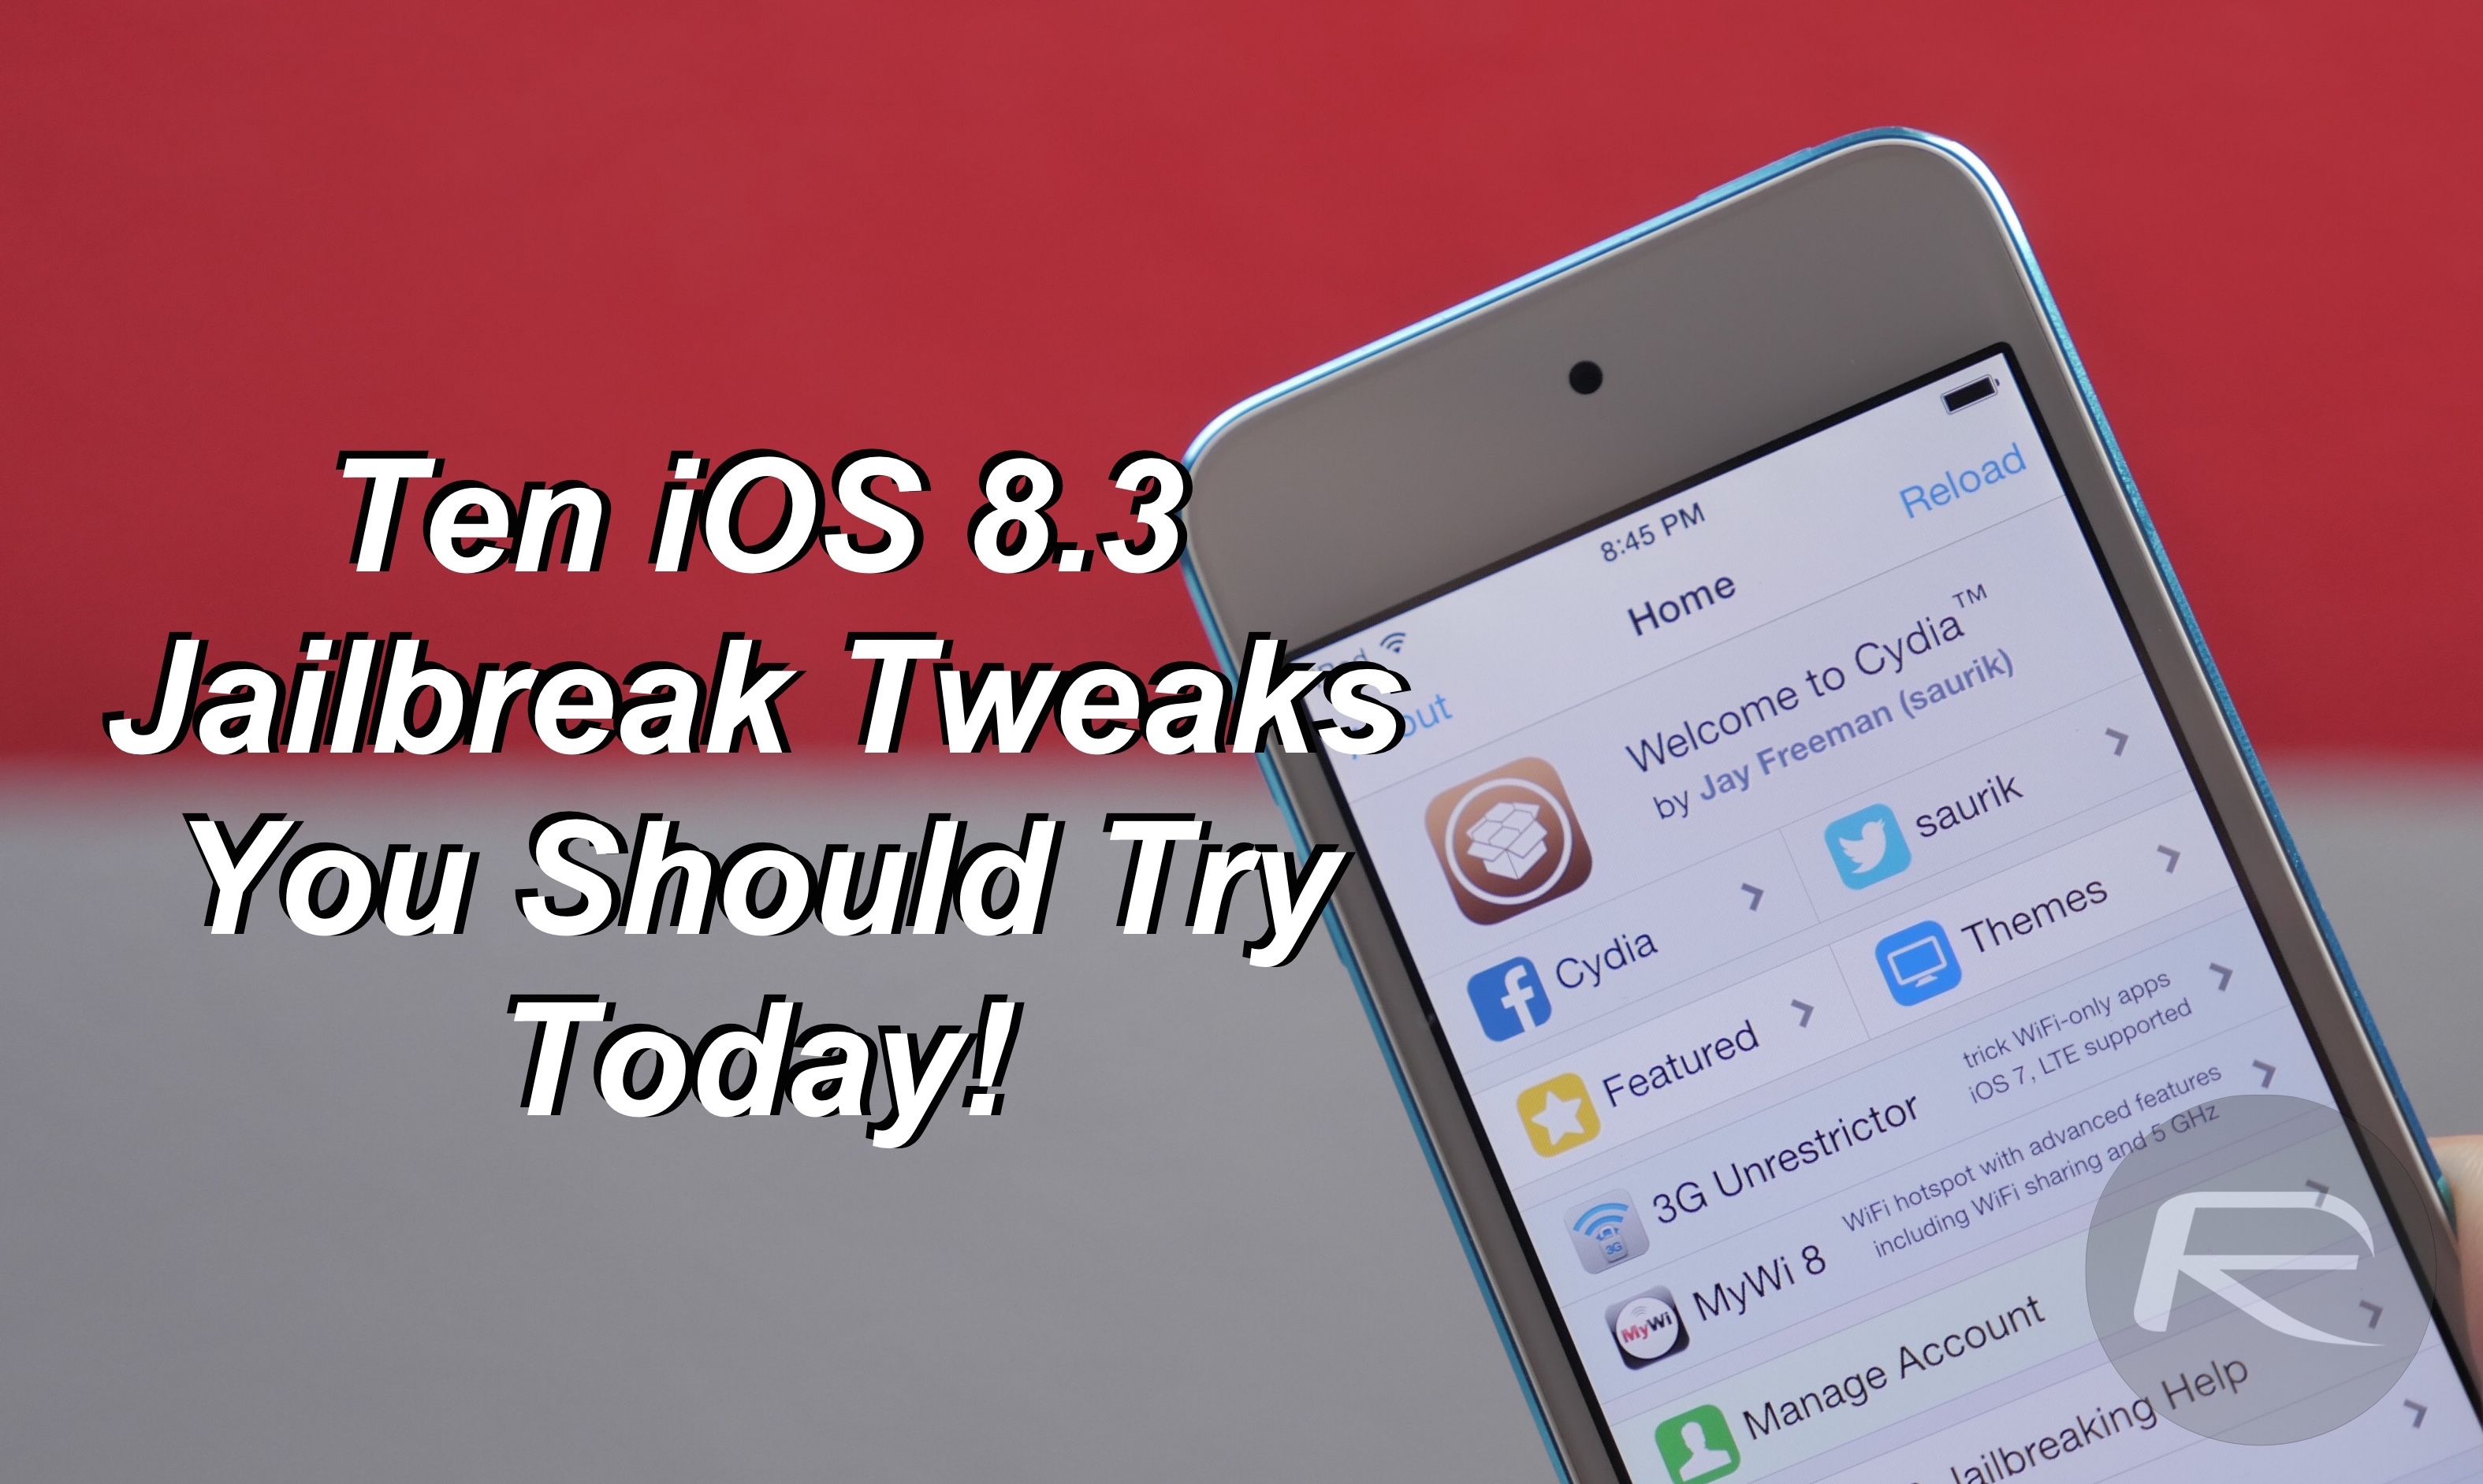 ios 8.3 jailbreak video